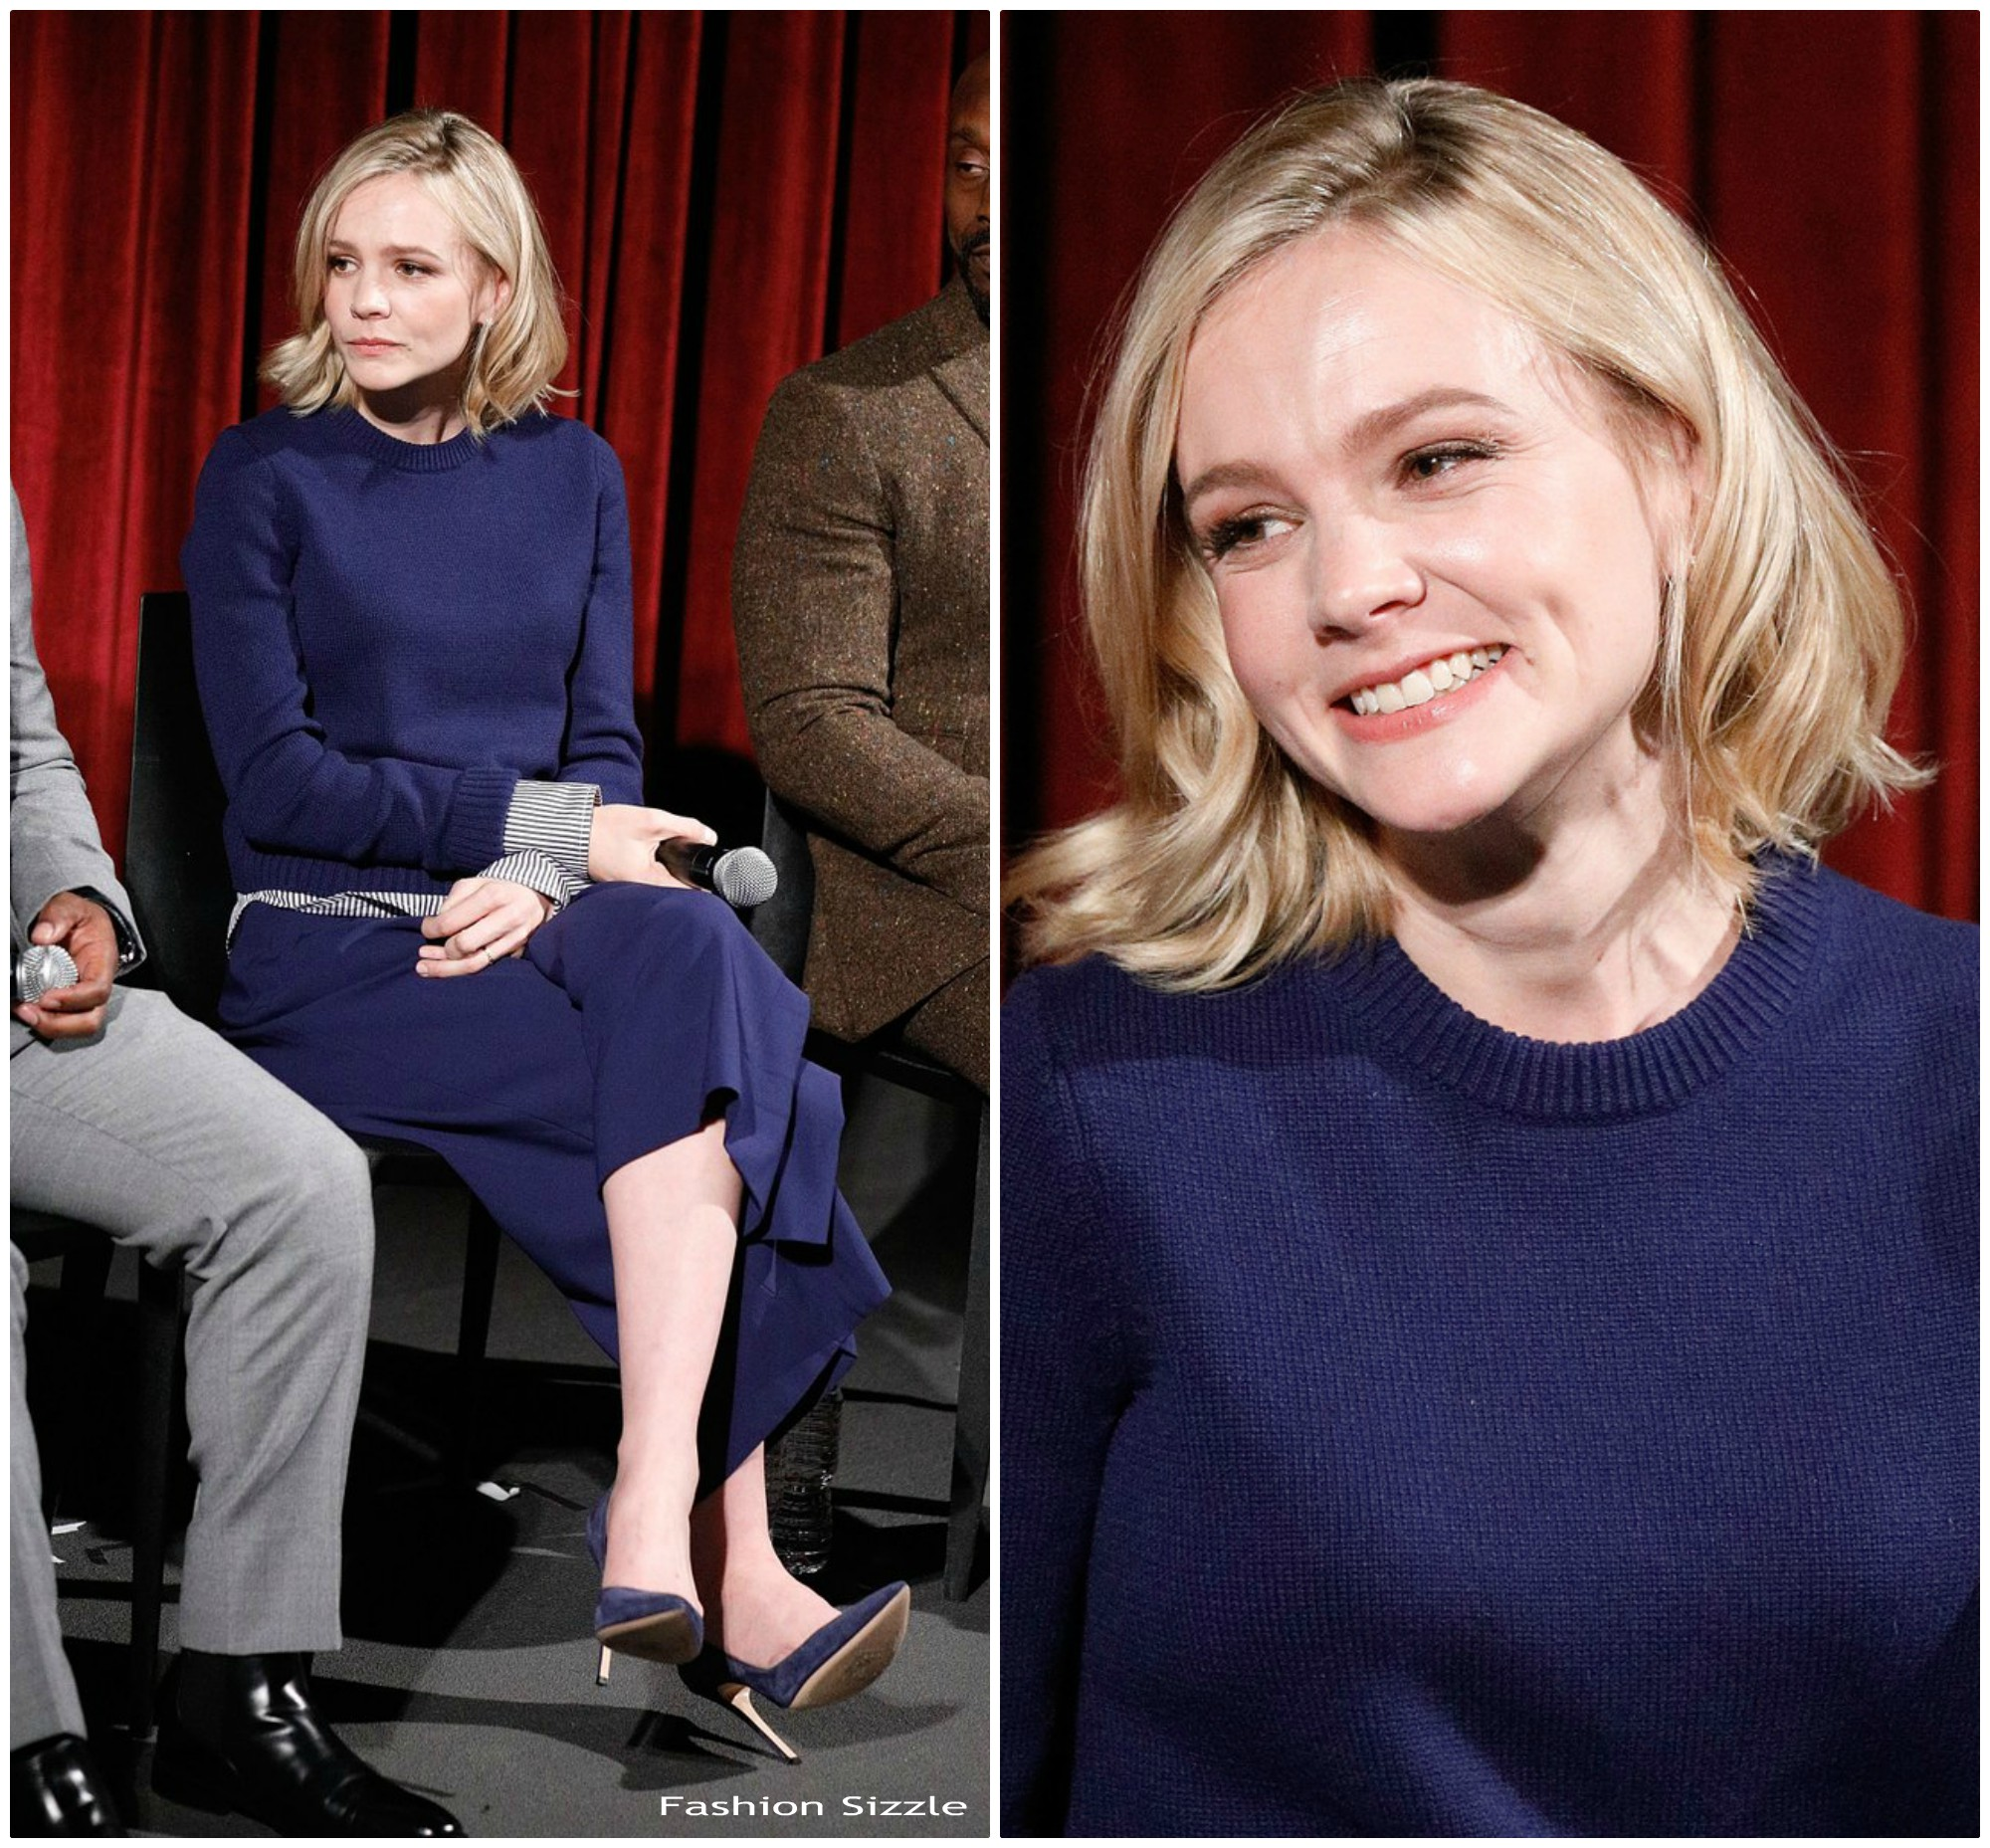 carey-mulligan-in-michael-kors-moma-mudbound-new-york-screening